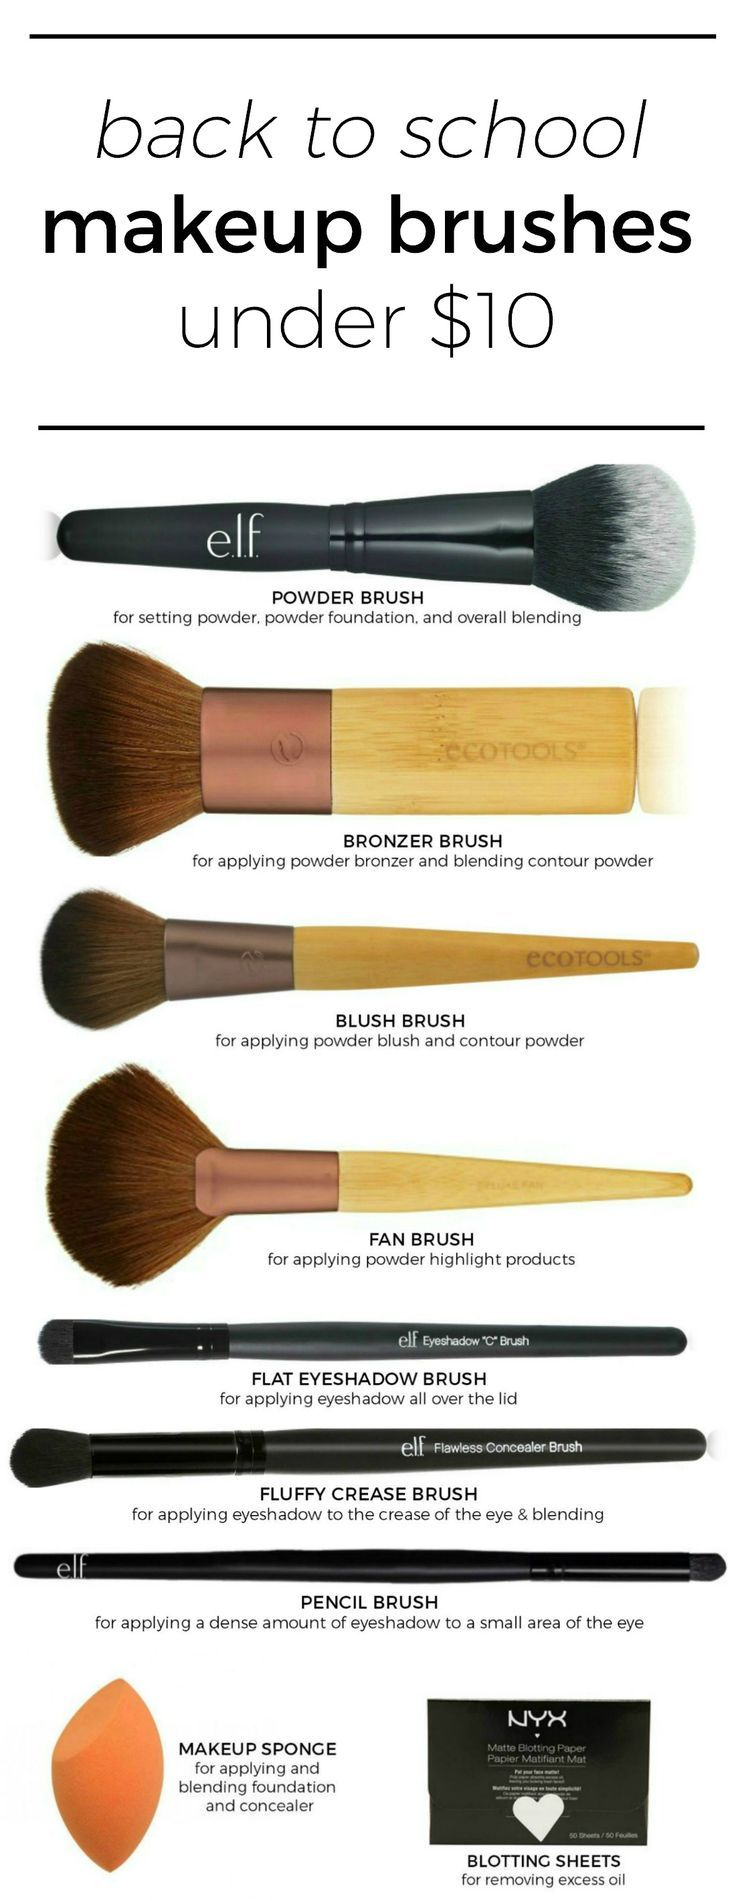 The best makeup brushes under $10 that are perfect for your back to school makeu...